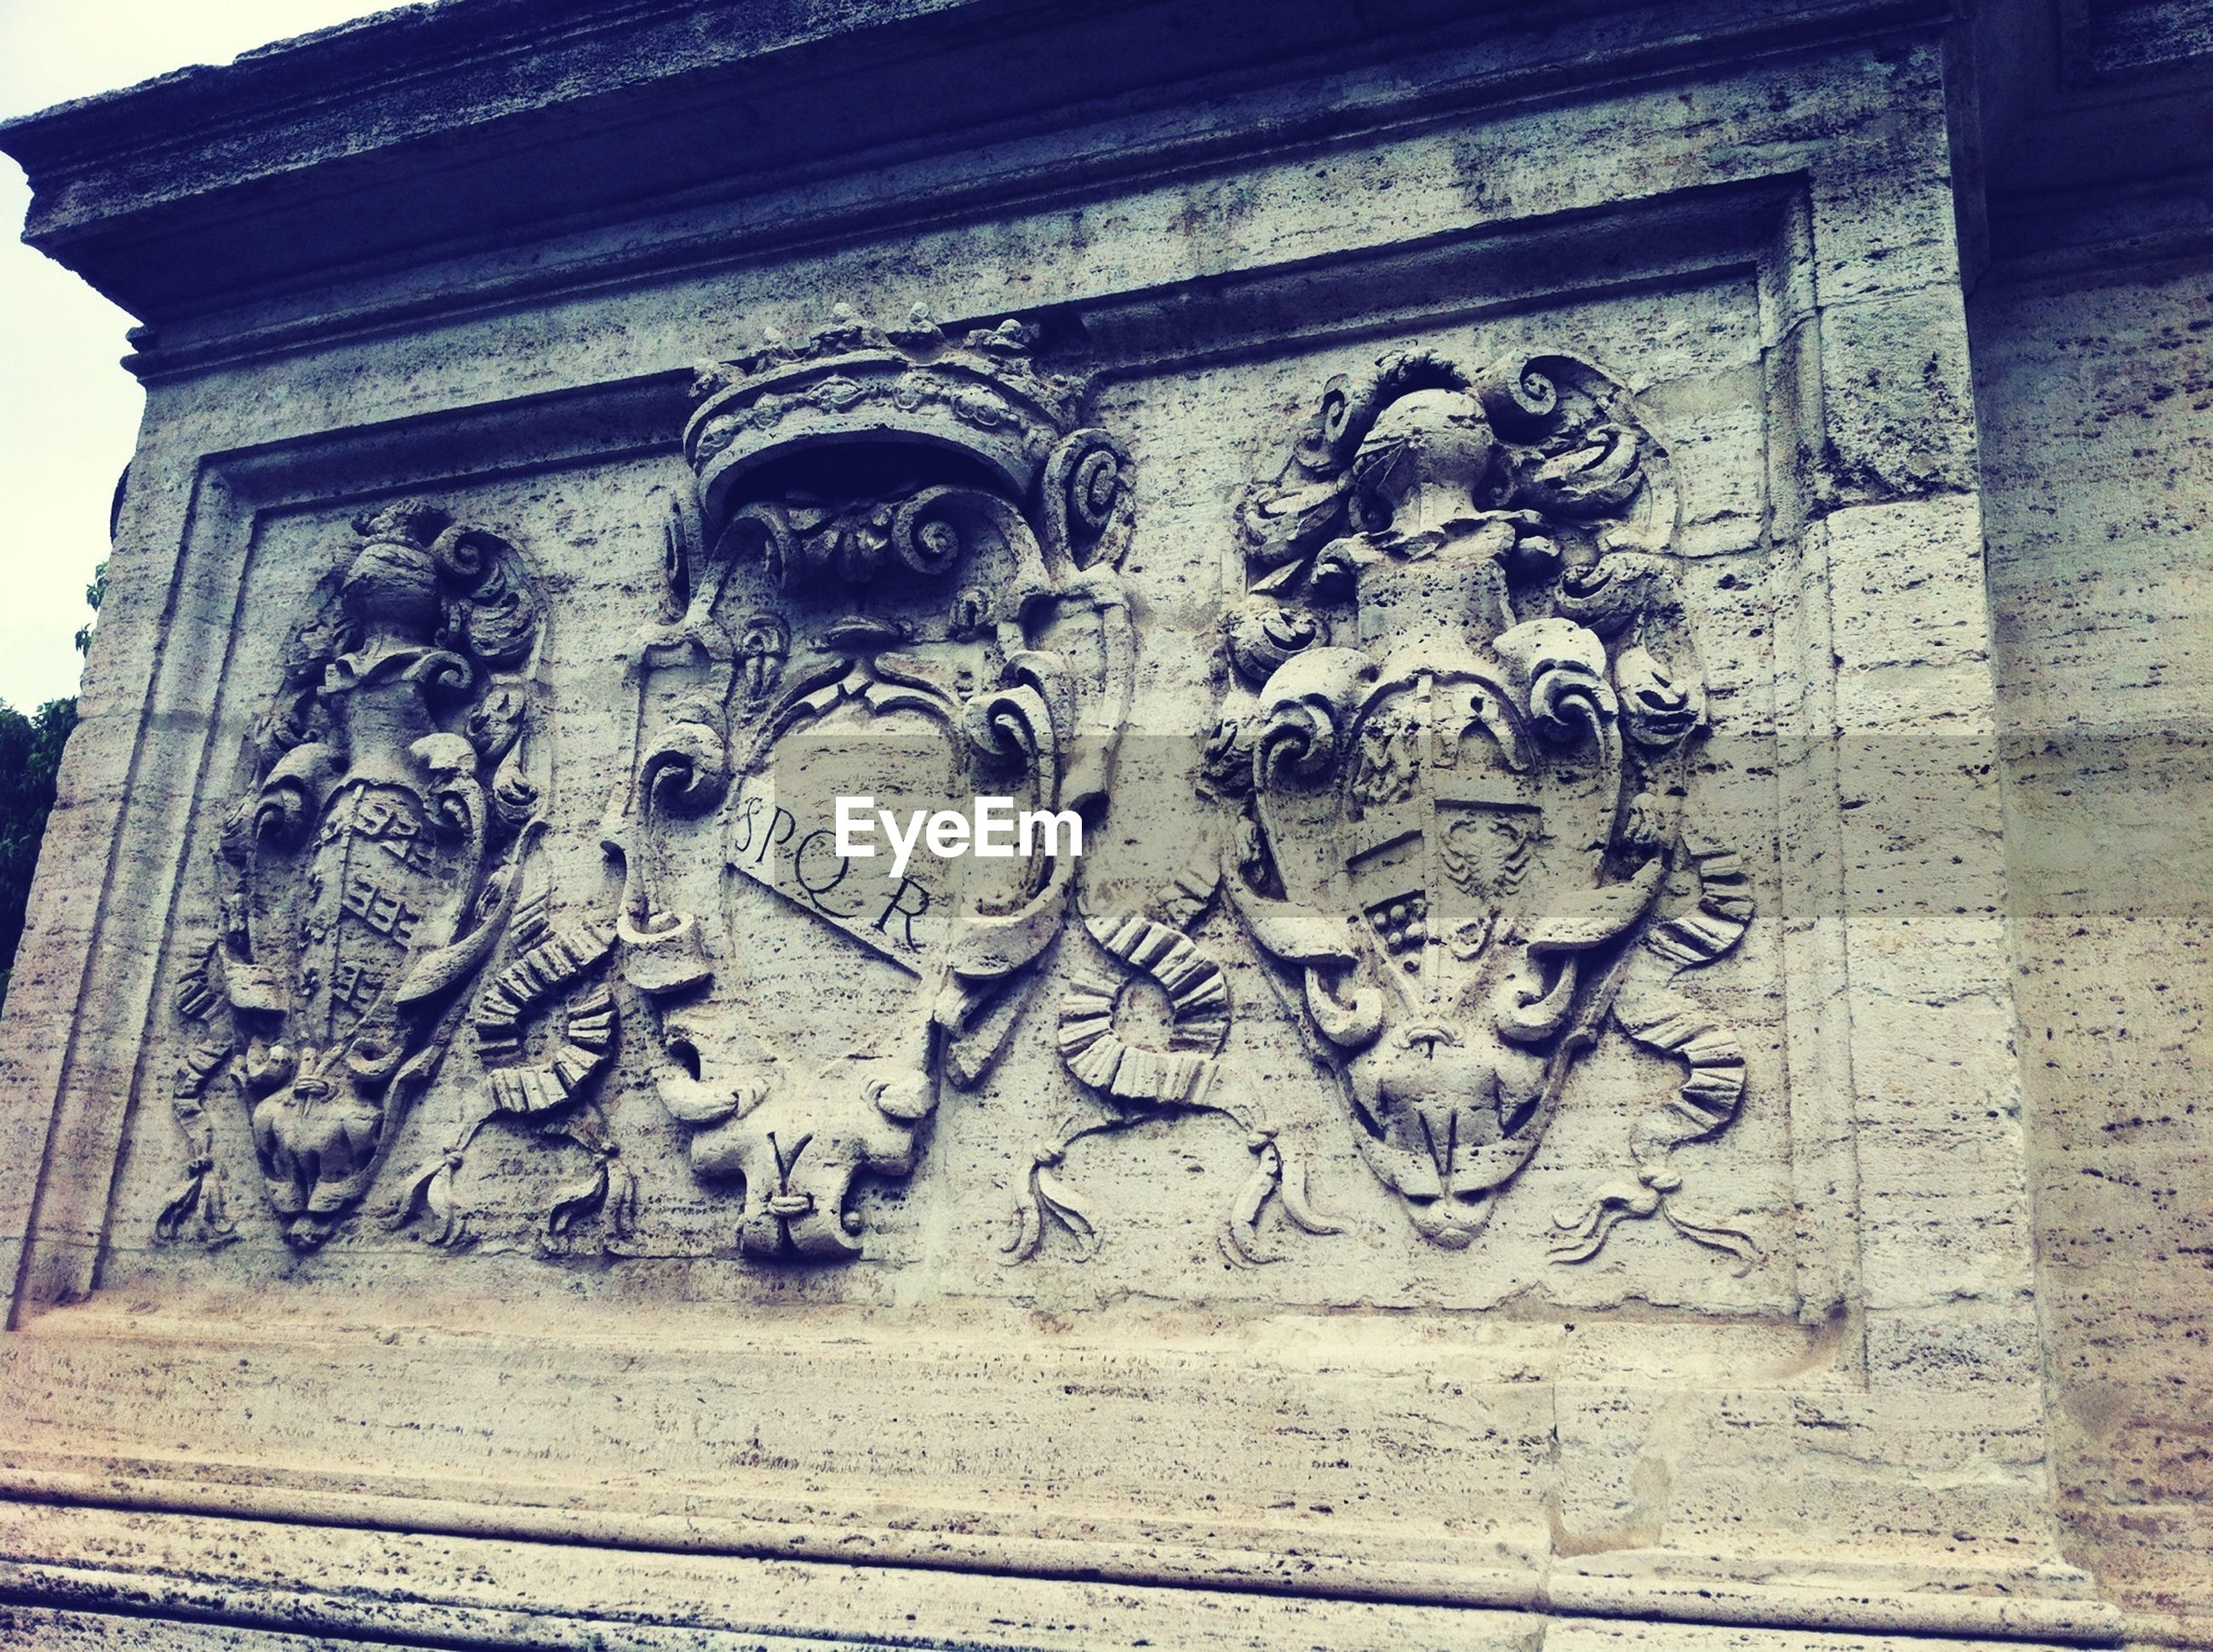 art and craft, art, creativity, architecture, human representation, built structure, building exterior, carving - craft product, low angle view, graffiti, wall - building feature, sculpture, text, statue, history, ornate, carving, old